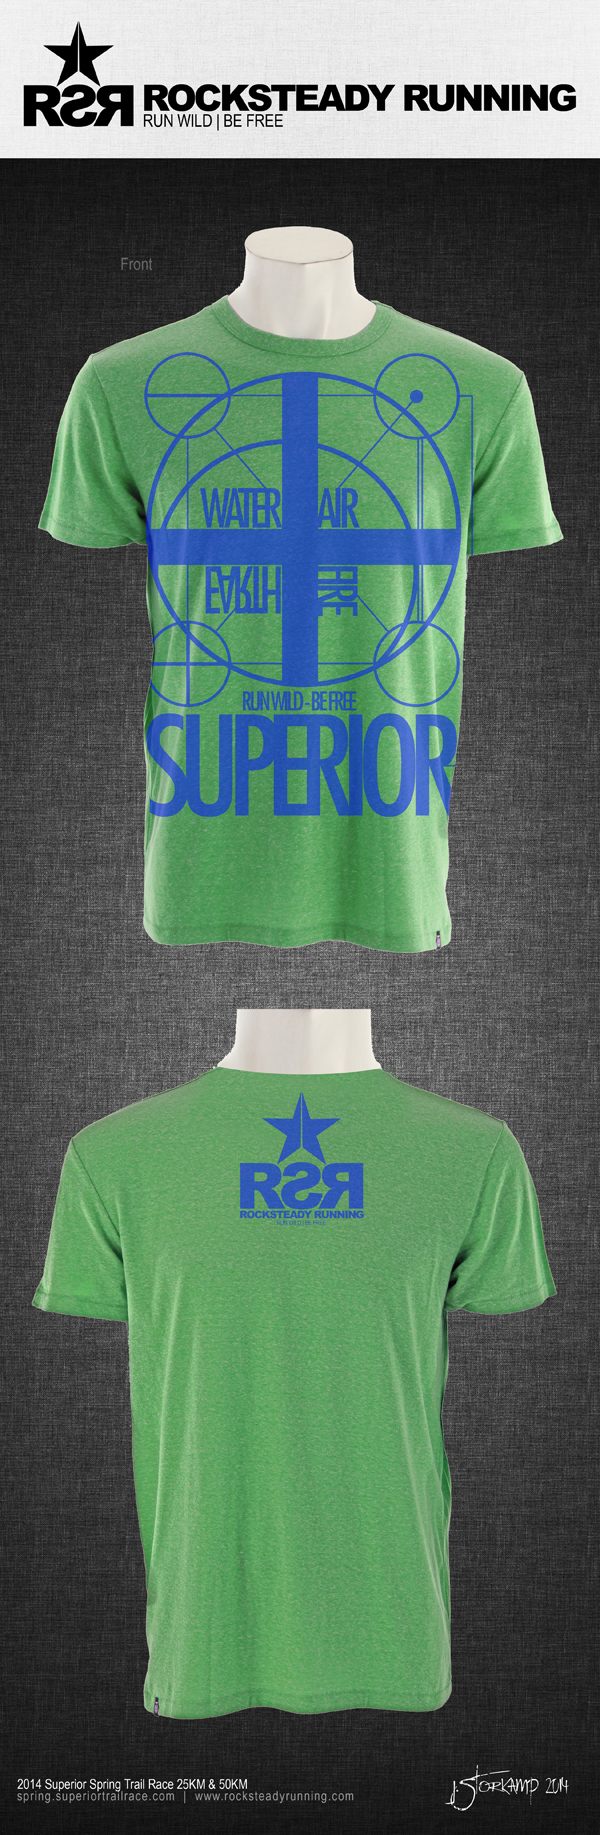 2014_Superior_Spring_Shirt_Mockup_Reduced600px_Stacked-5-9-14